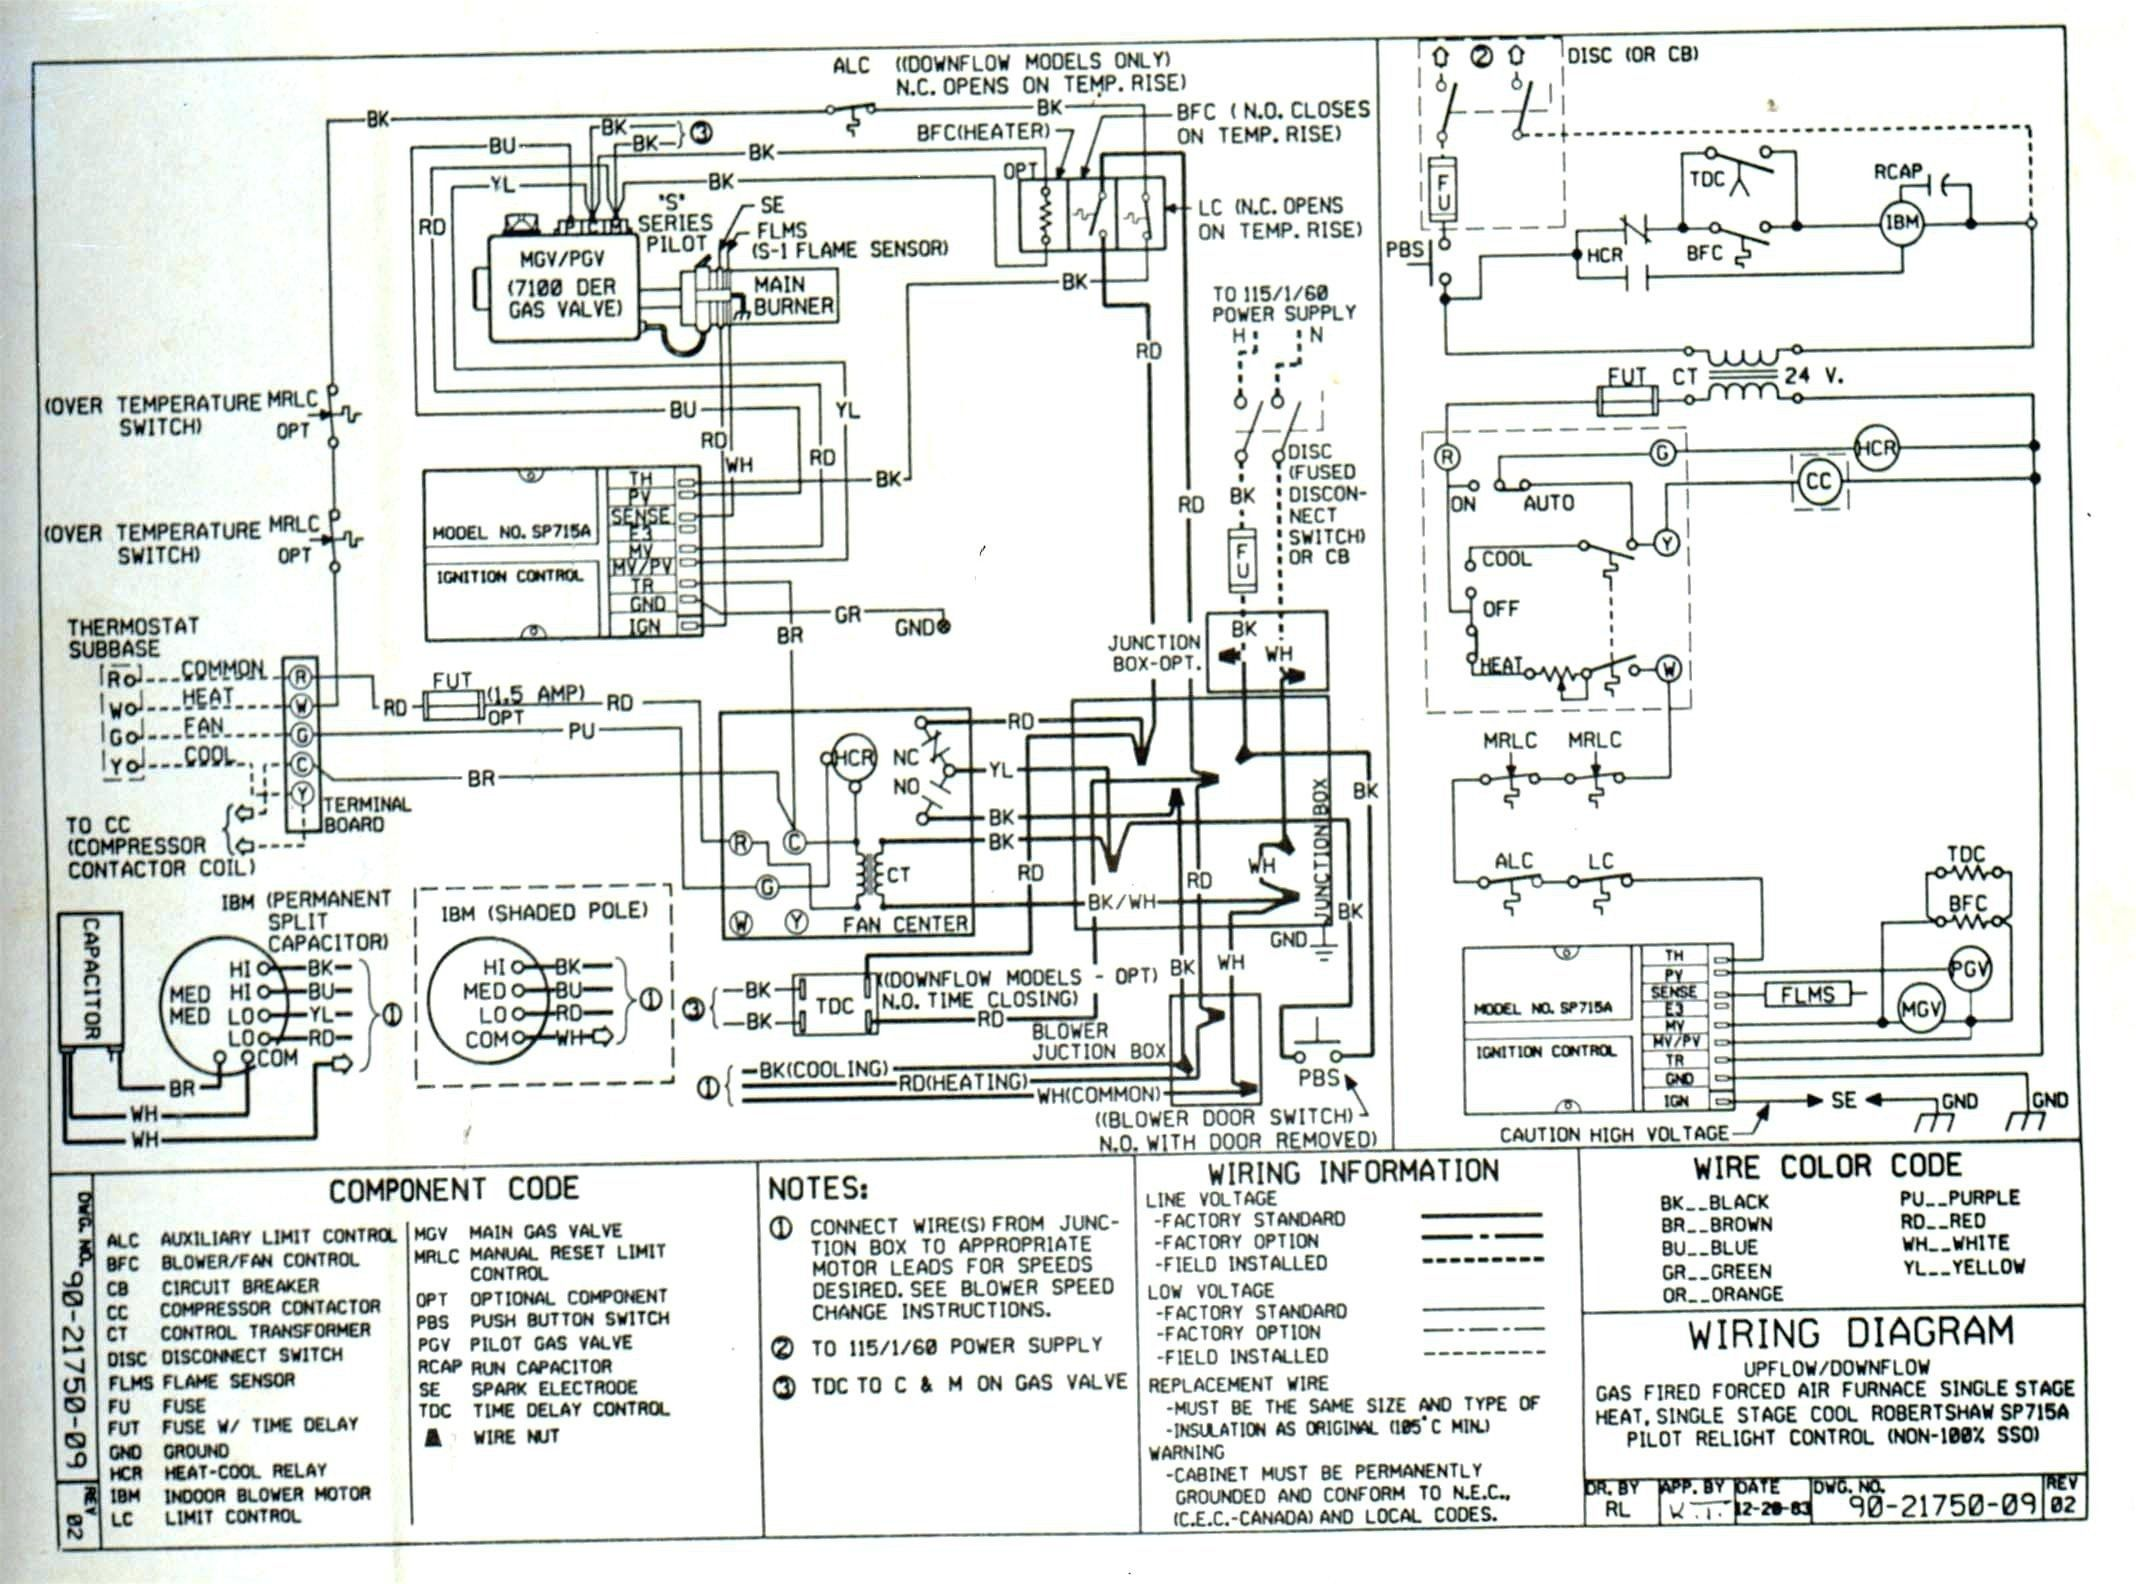 trane wiring diagrams wiring diagramstrane air handler wiring diagram picture wiring diagrams intended wiring diagrams trane elibrary trane air handler